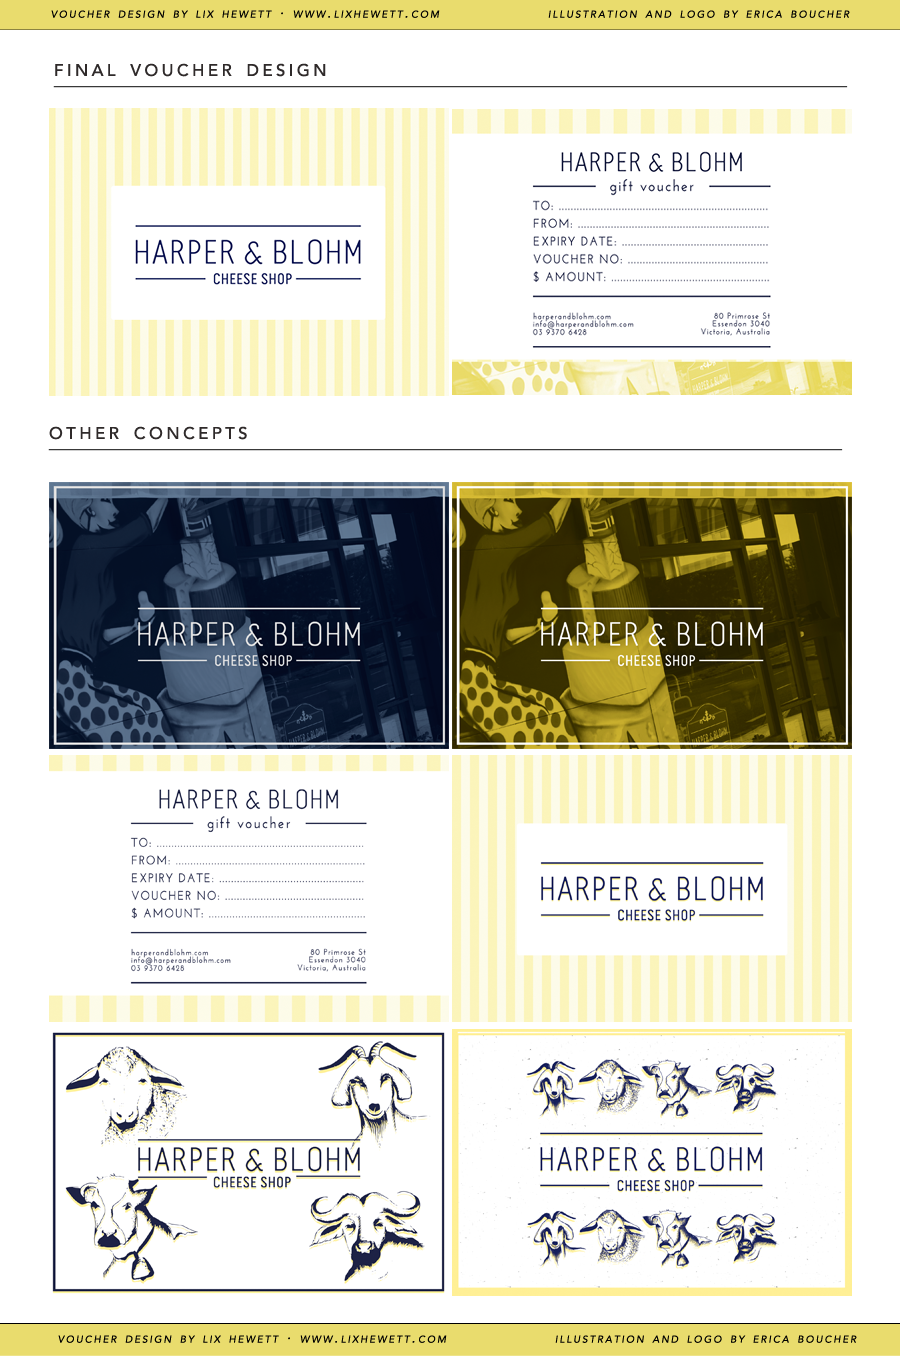 Cheese Shop Gift Card Design by Lix Hewett